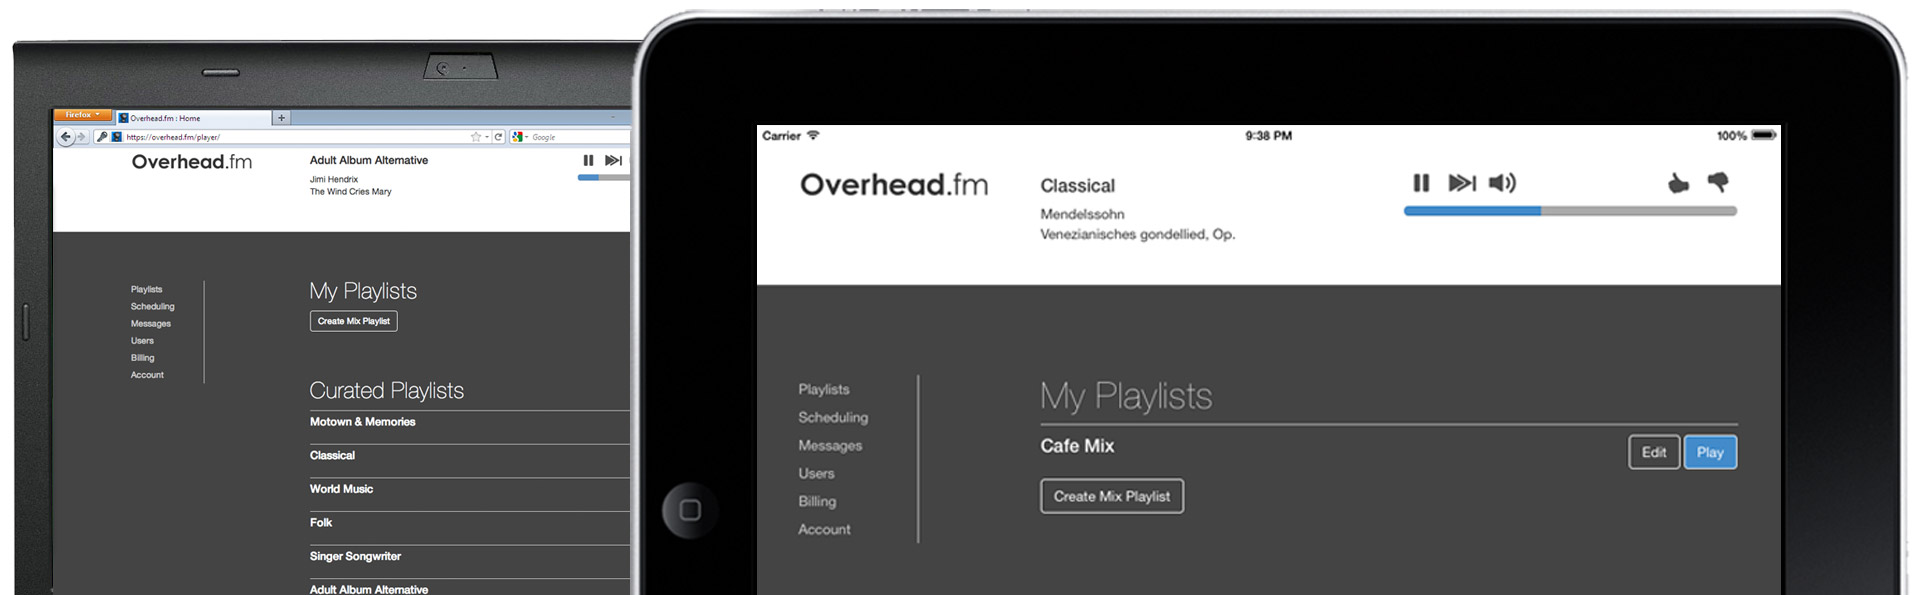 Overhead fm: The Muzak Alternative You Can't Afford to Miss